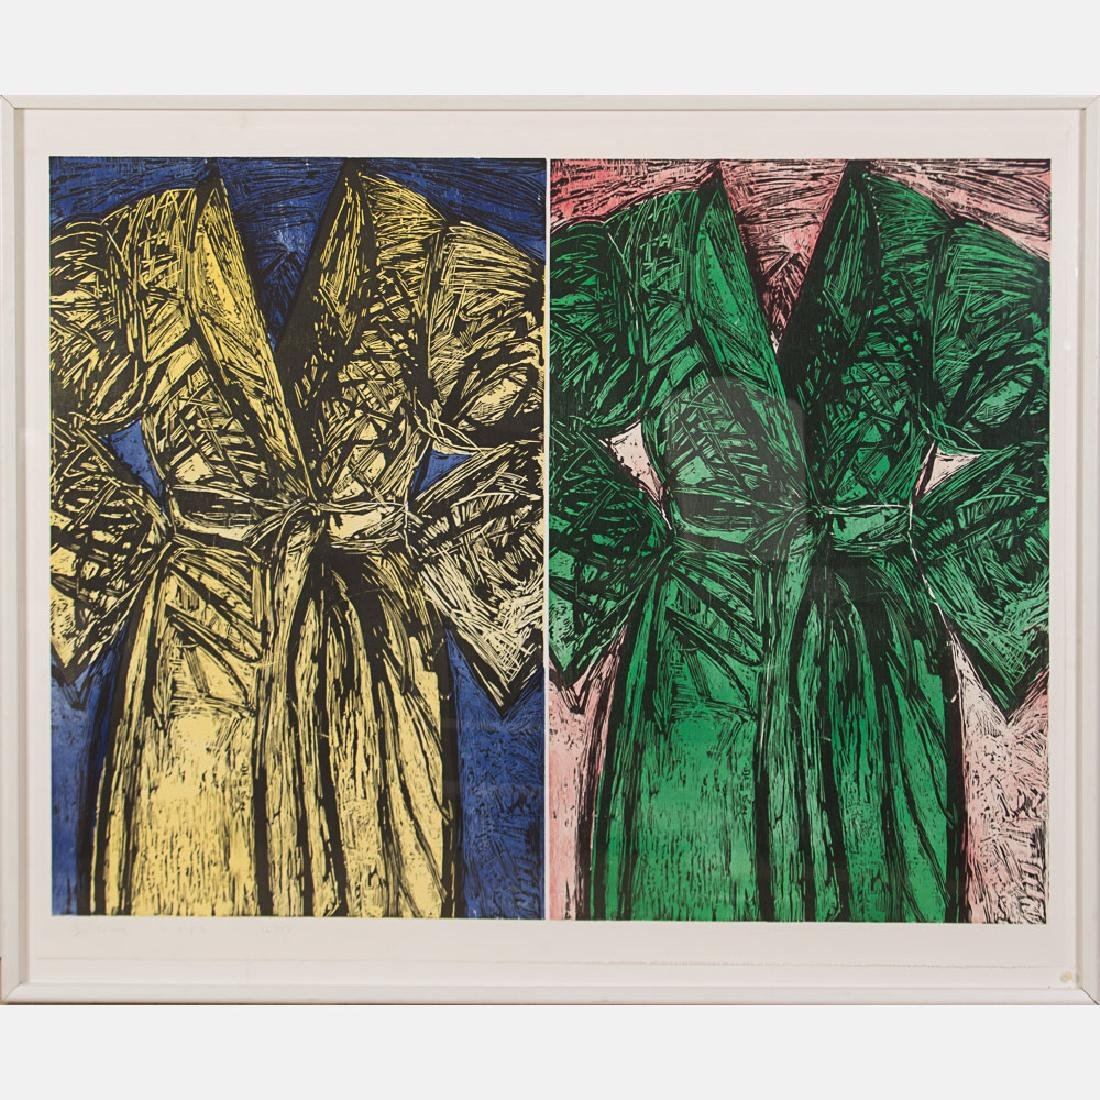 Jim Dine (b. 1935) The Kindergarten Robe, 1983,